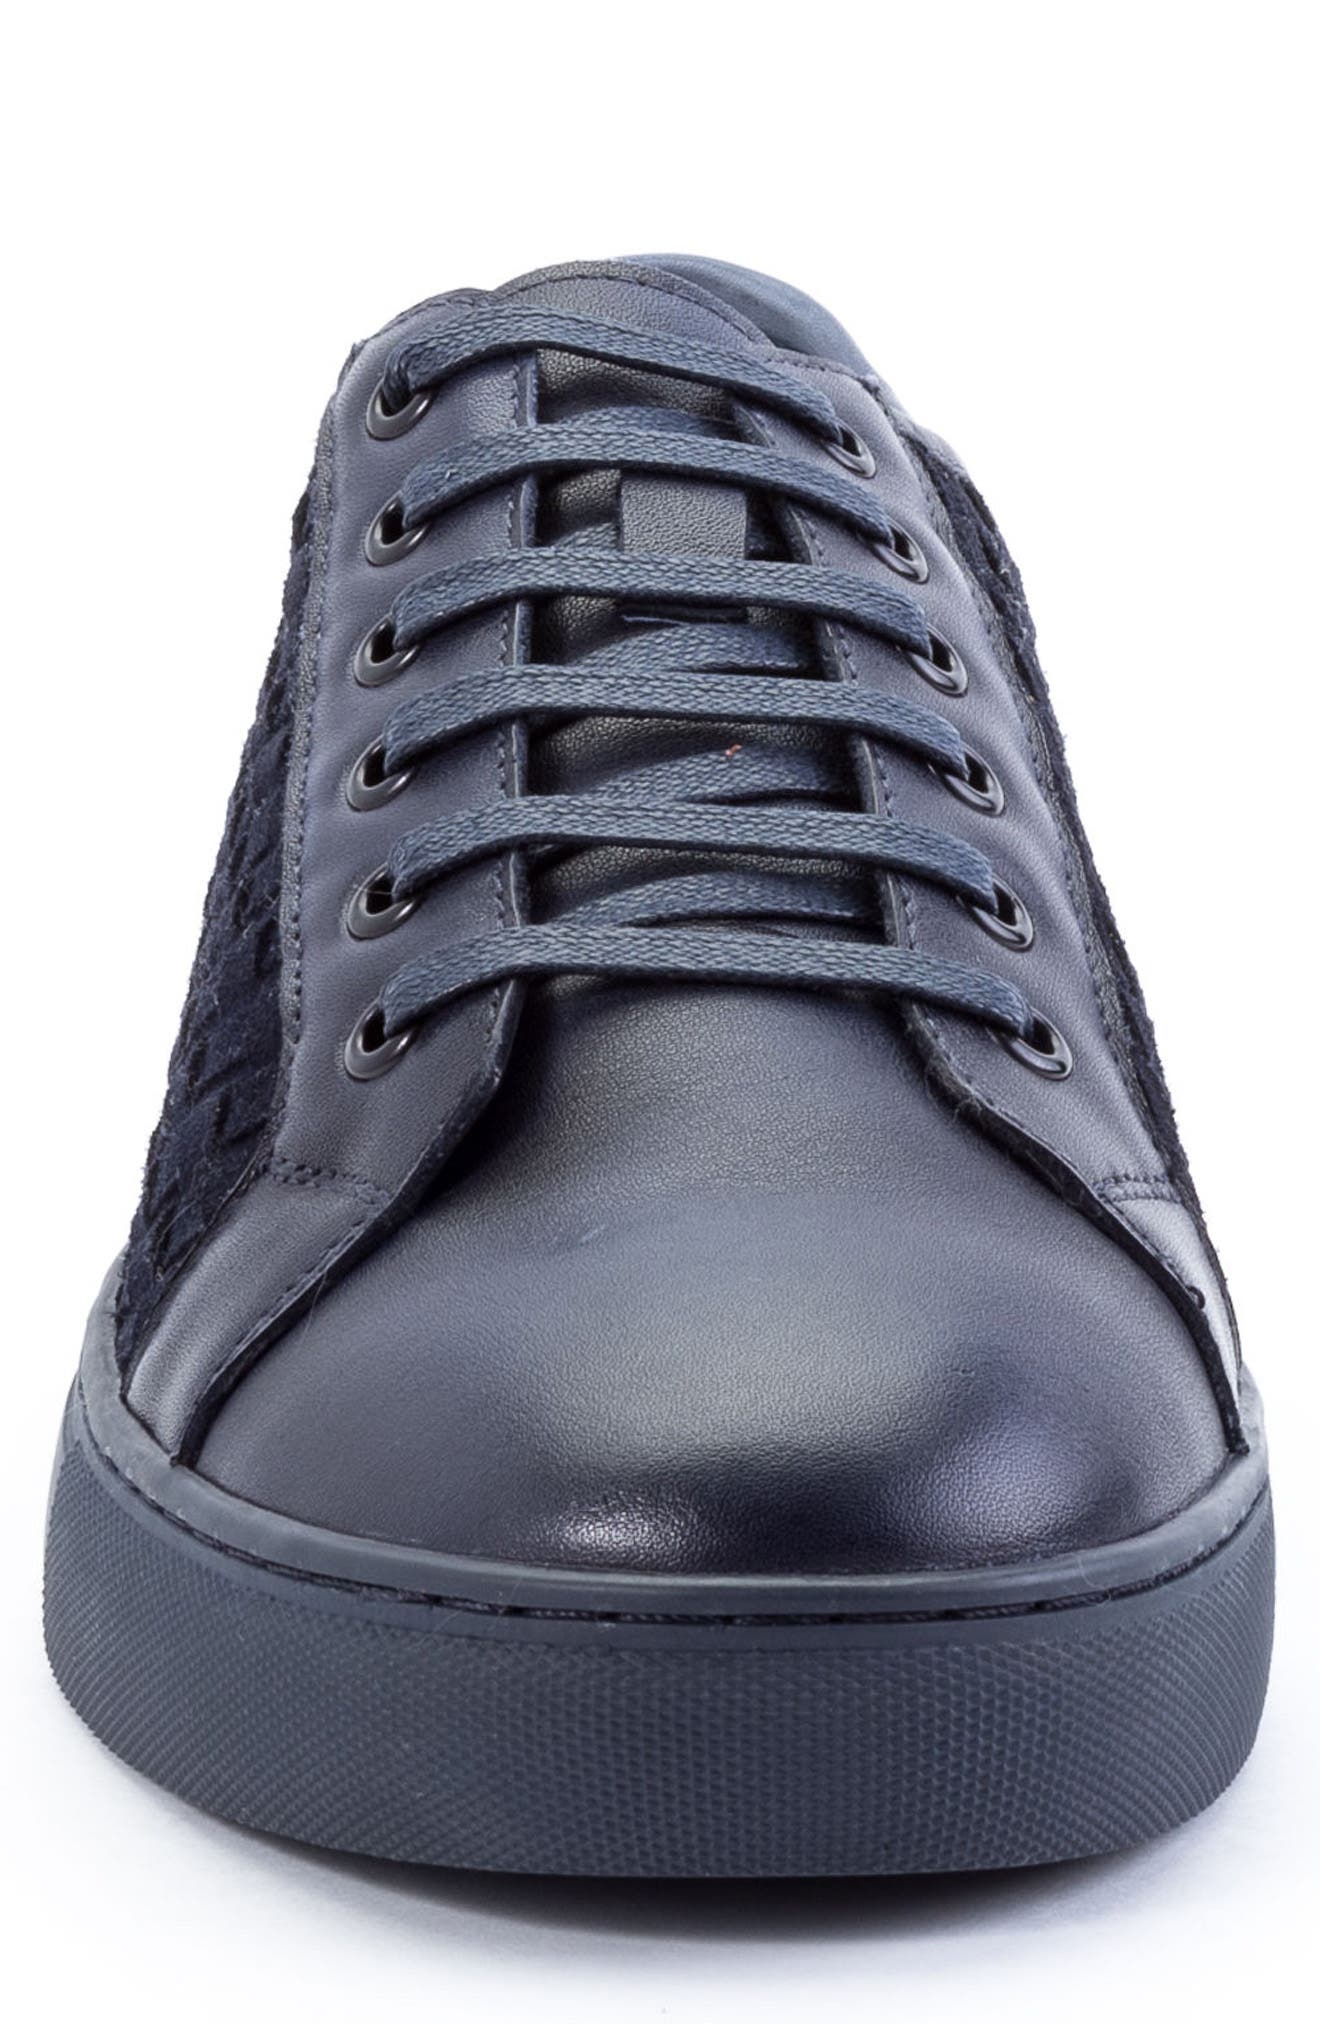 Player Woven Low Top Sneaker,                             Alternate thumbnail 4, color,                             Navy Leather/ Suede